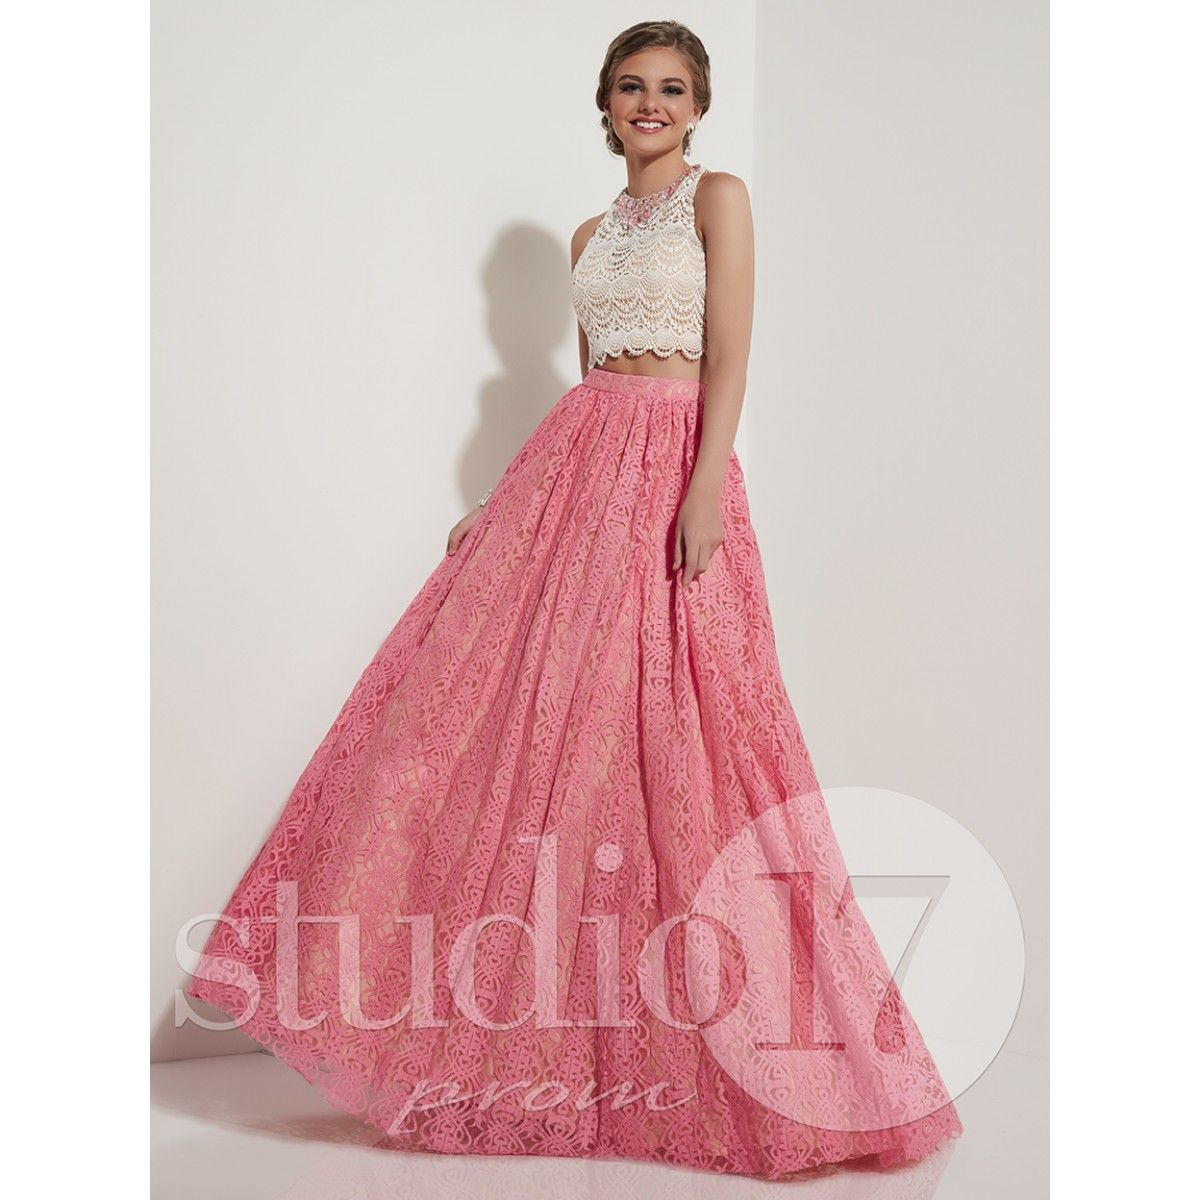 New   Style 12617   Prom   Pinterest   Prom, Formal gowns and Gowns